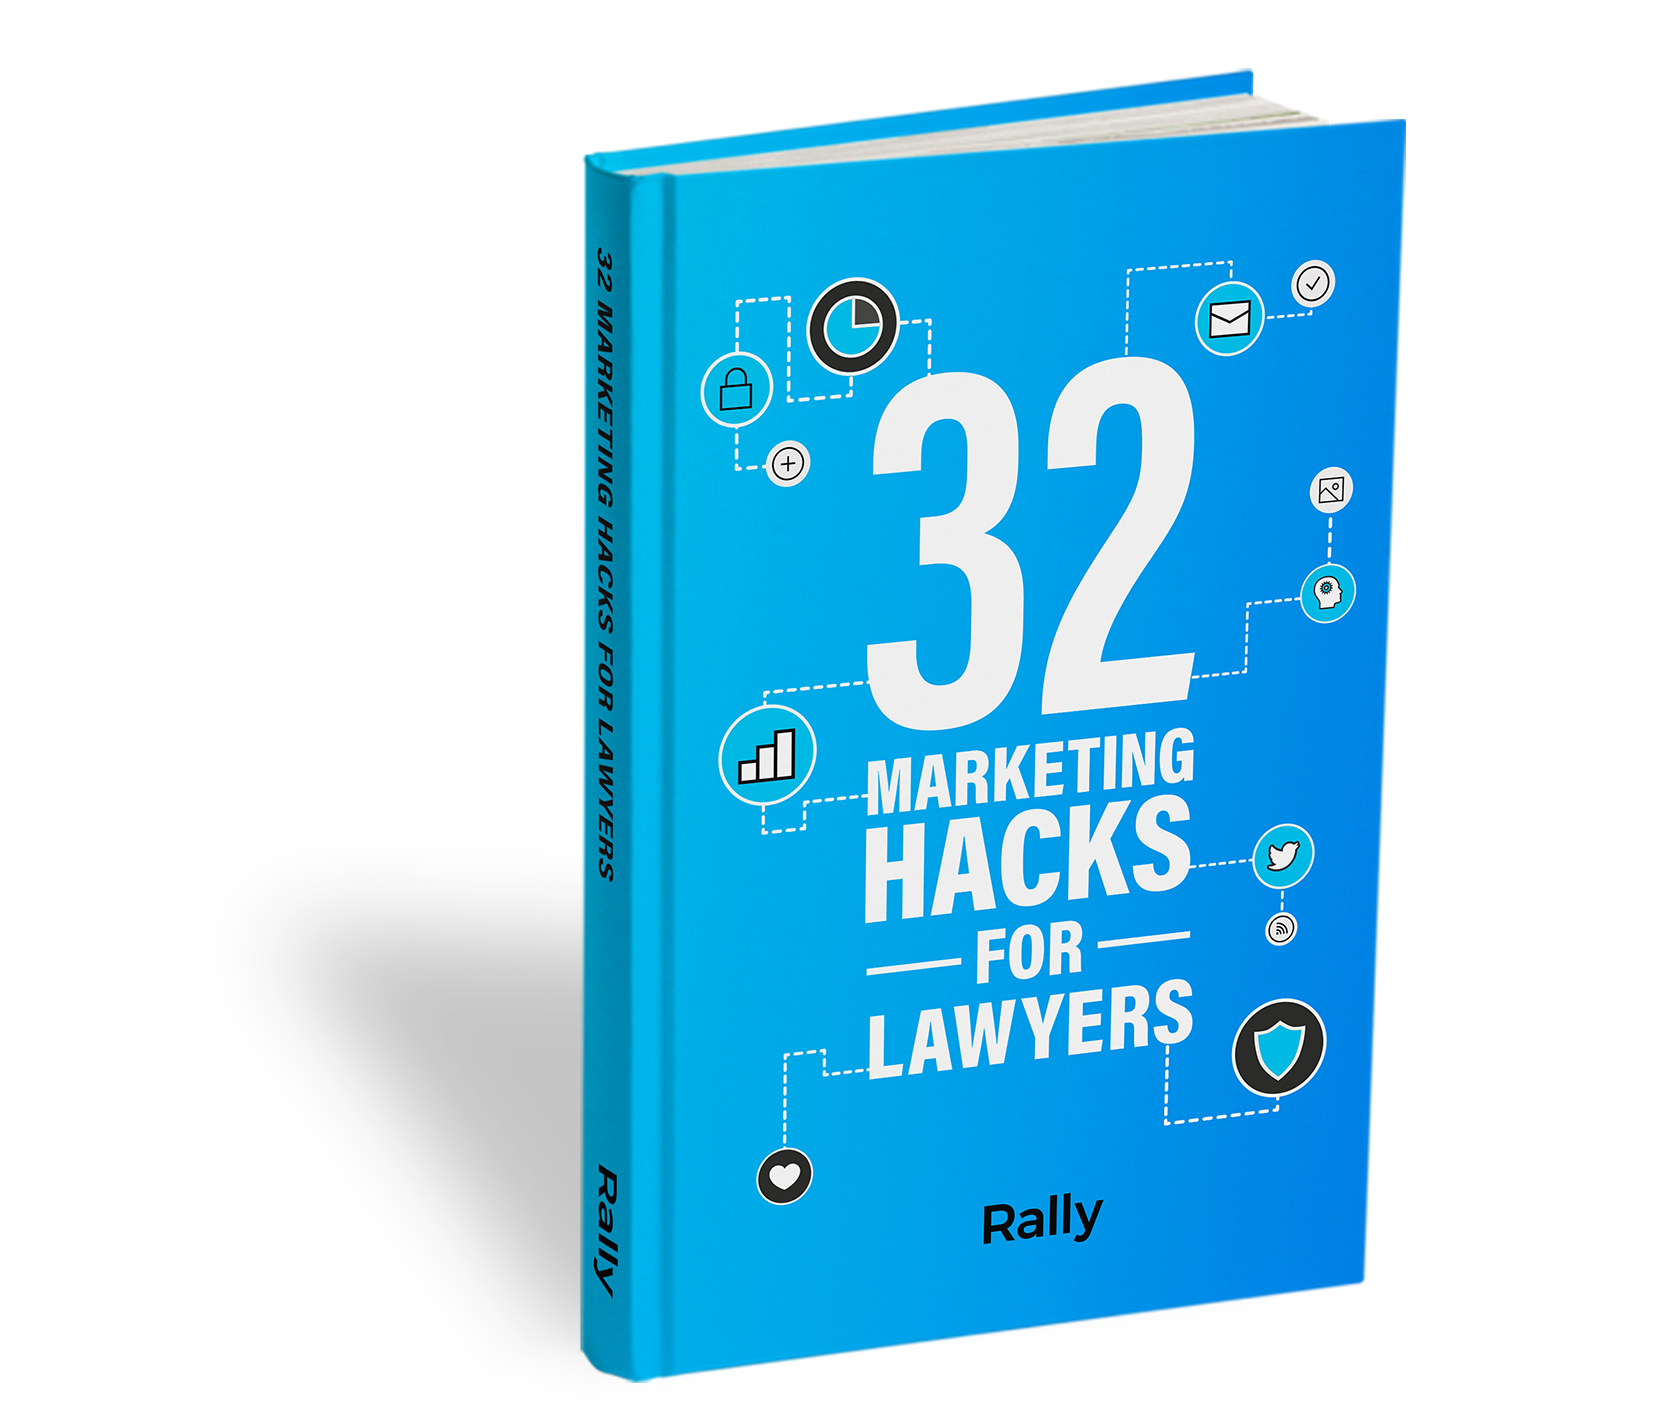 32 Marketing Hacks for Lawyers e-Book cover.